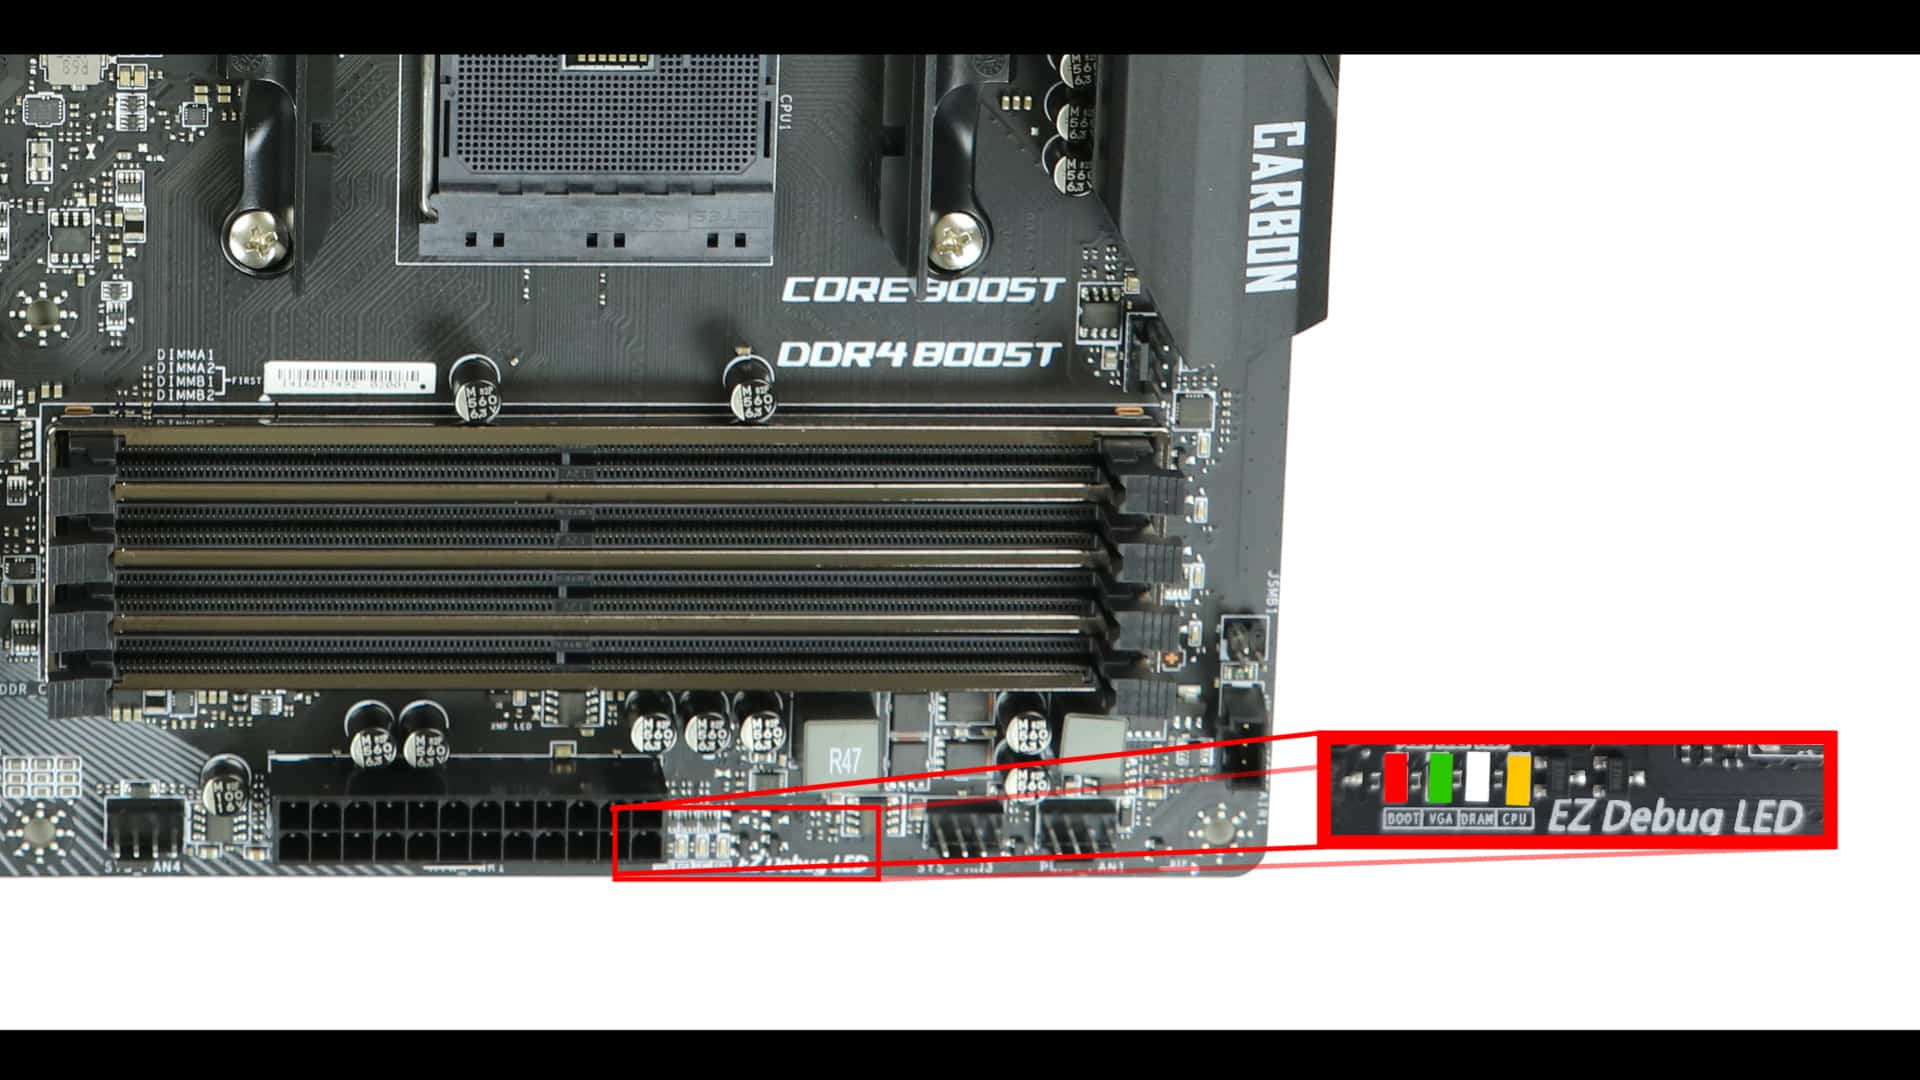 MSI X470 Gaming Pro Carbon EZ debugger